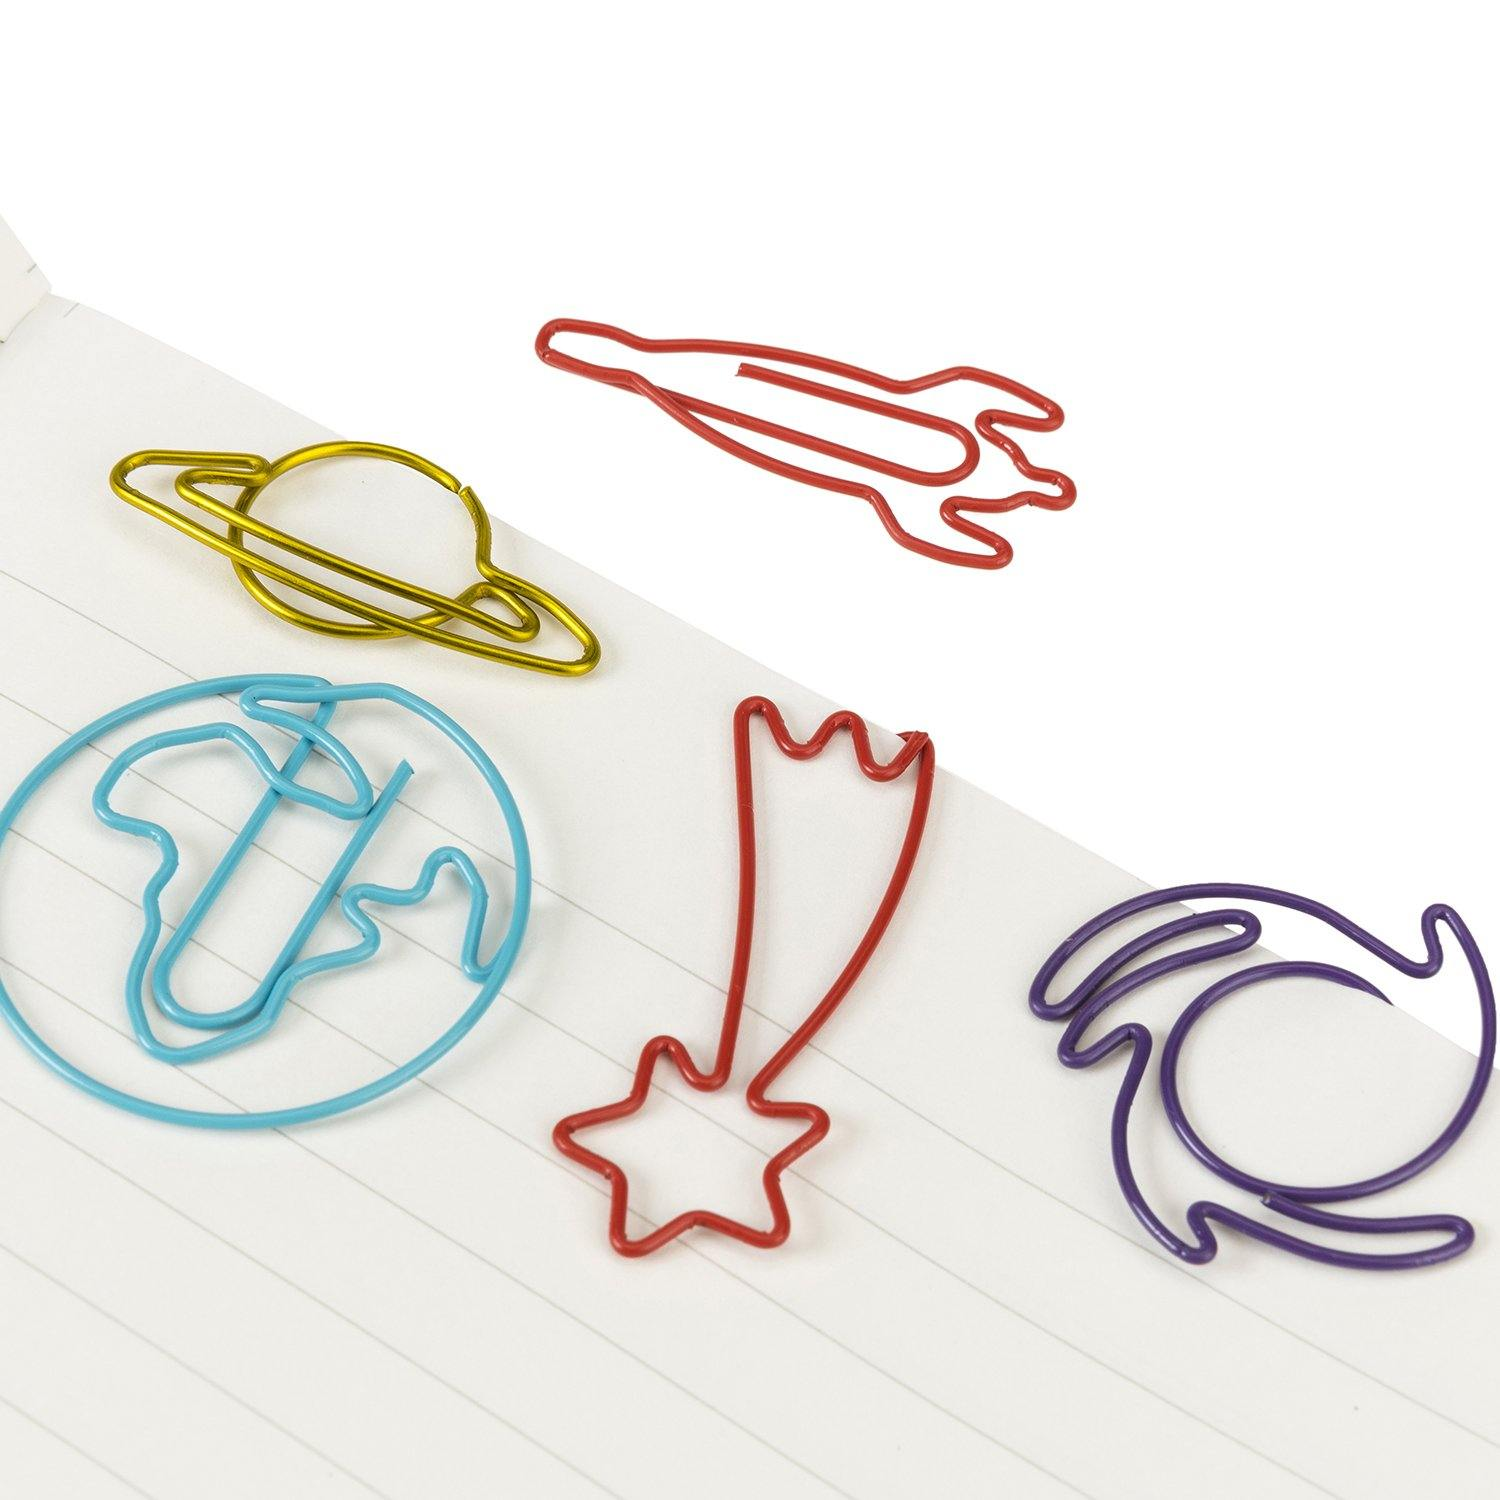 Science Museum Space Paper Clips